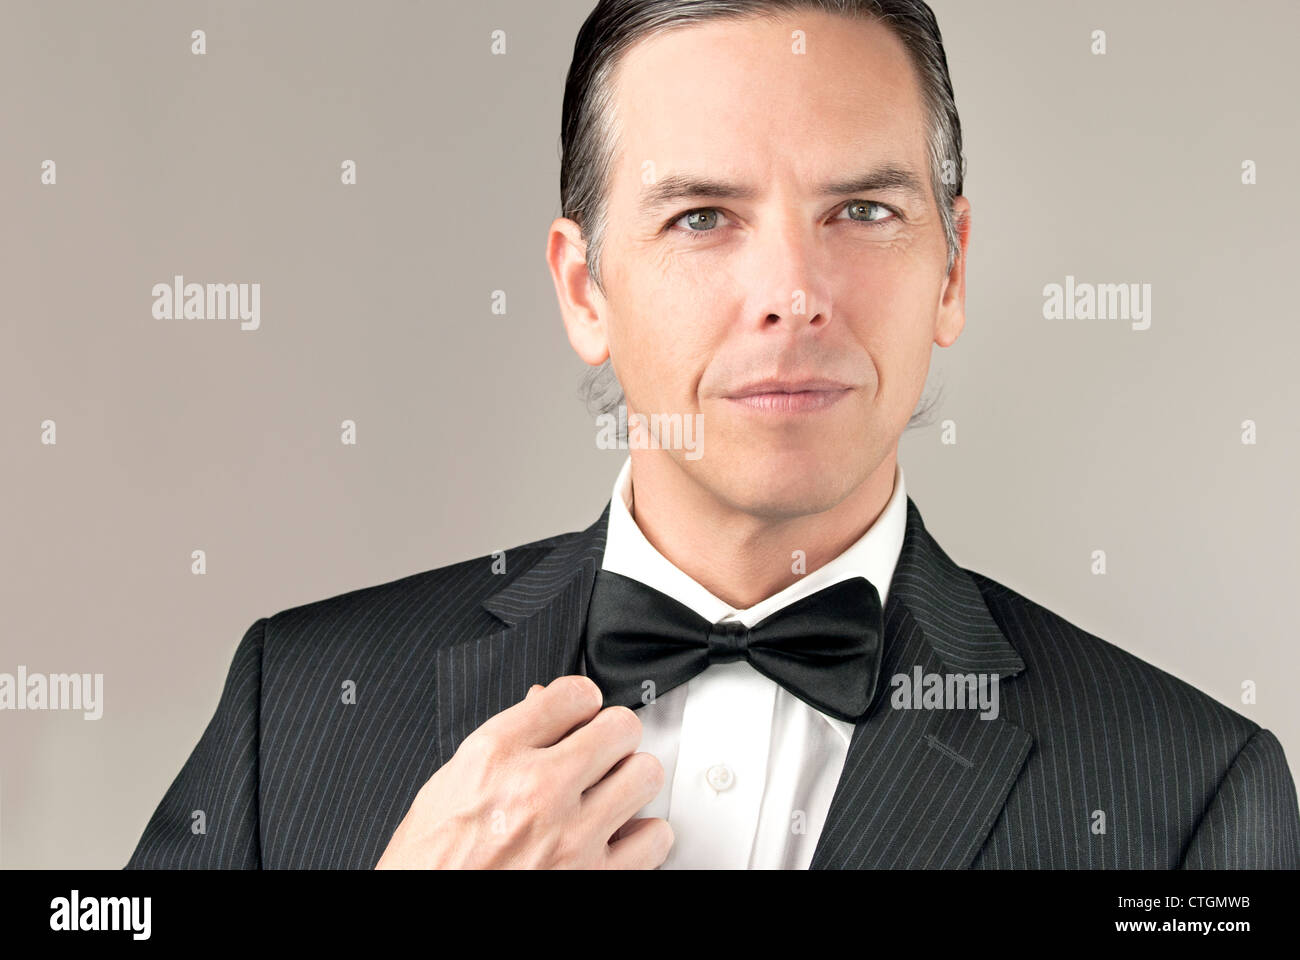 Close-up of a confident gentleman in a tux adjusting his cuff. - Stock Image